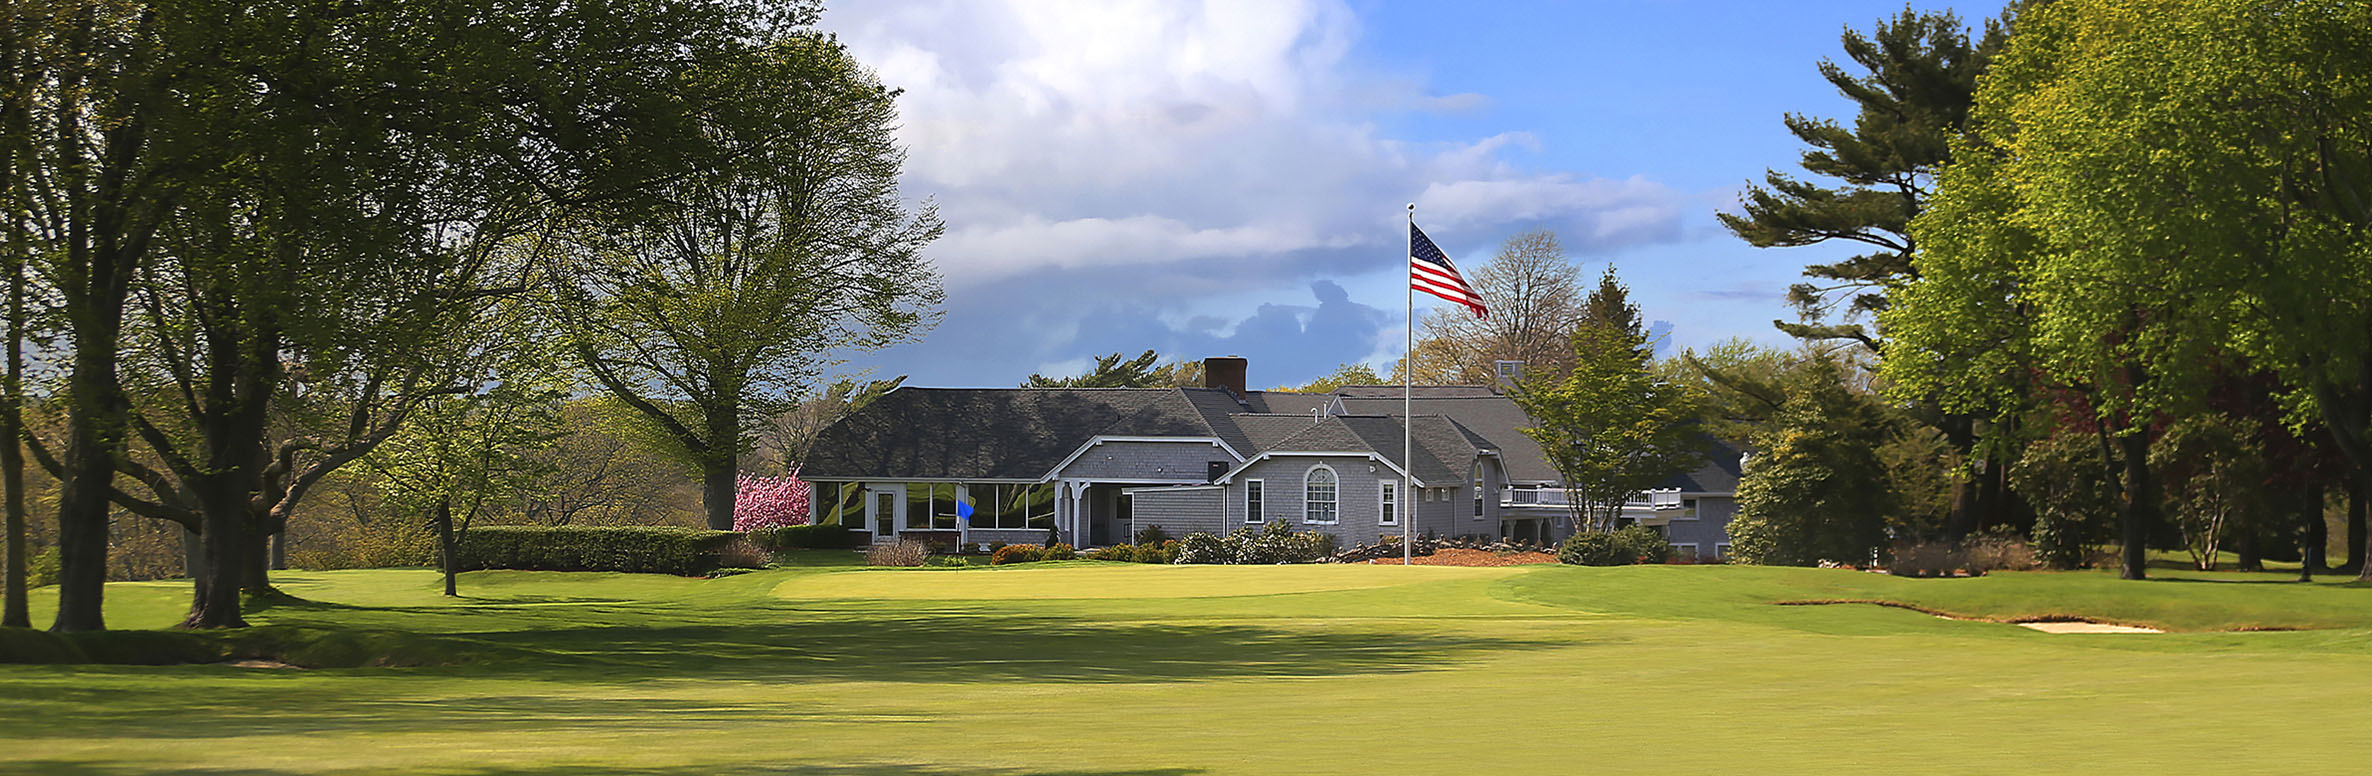 Golf Course Image - Country Club of New Bedford No. 18